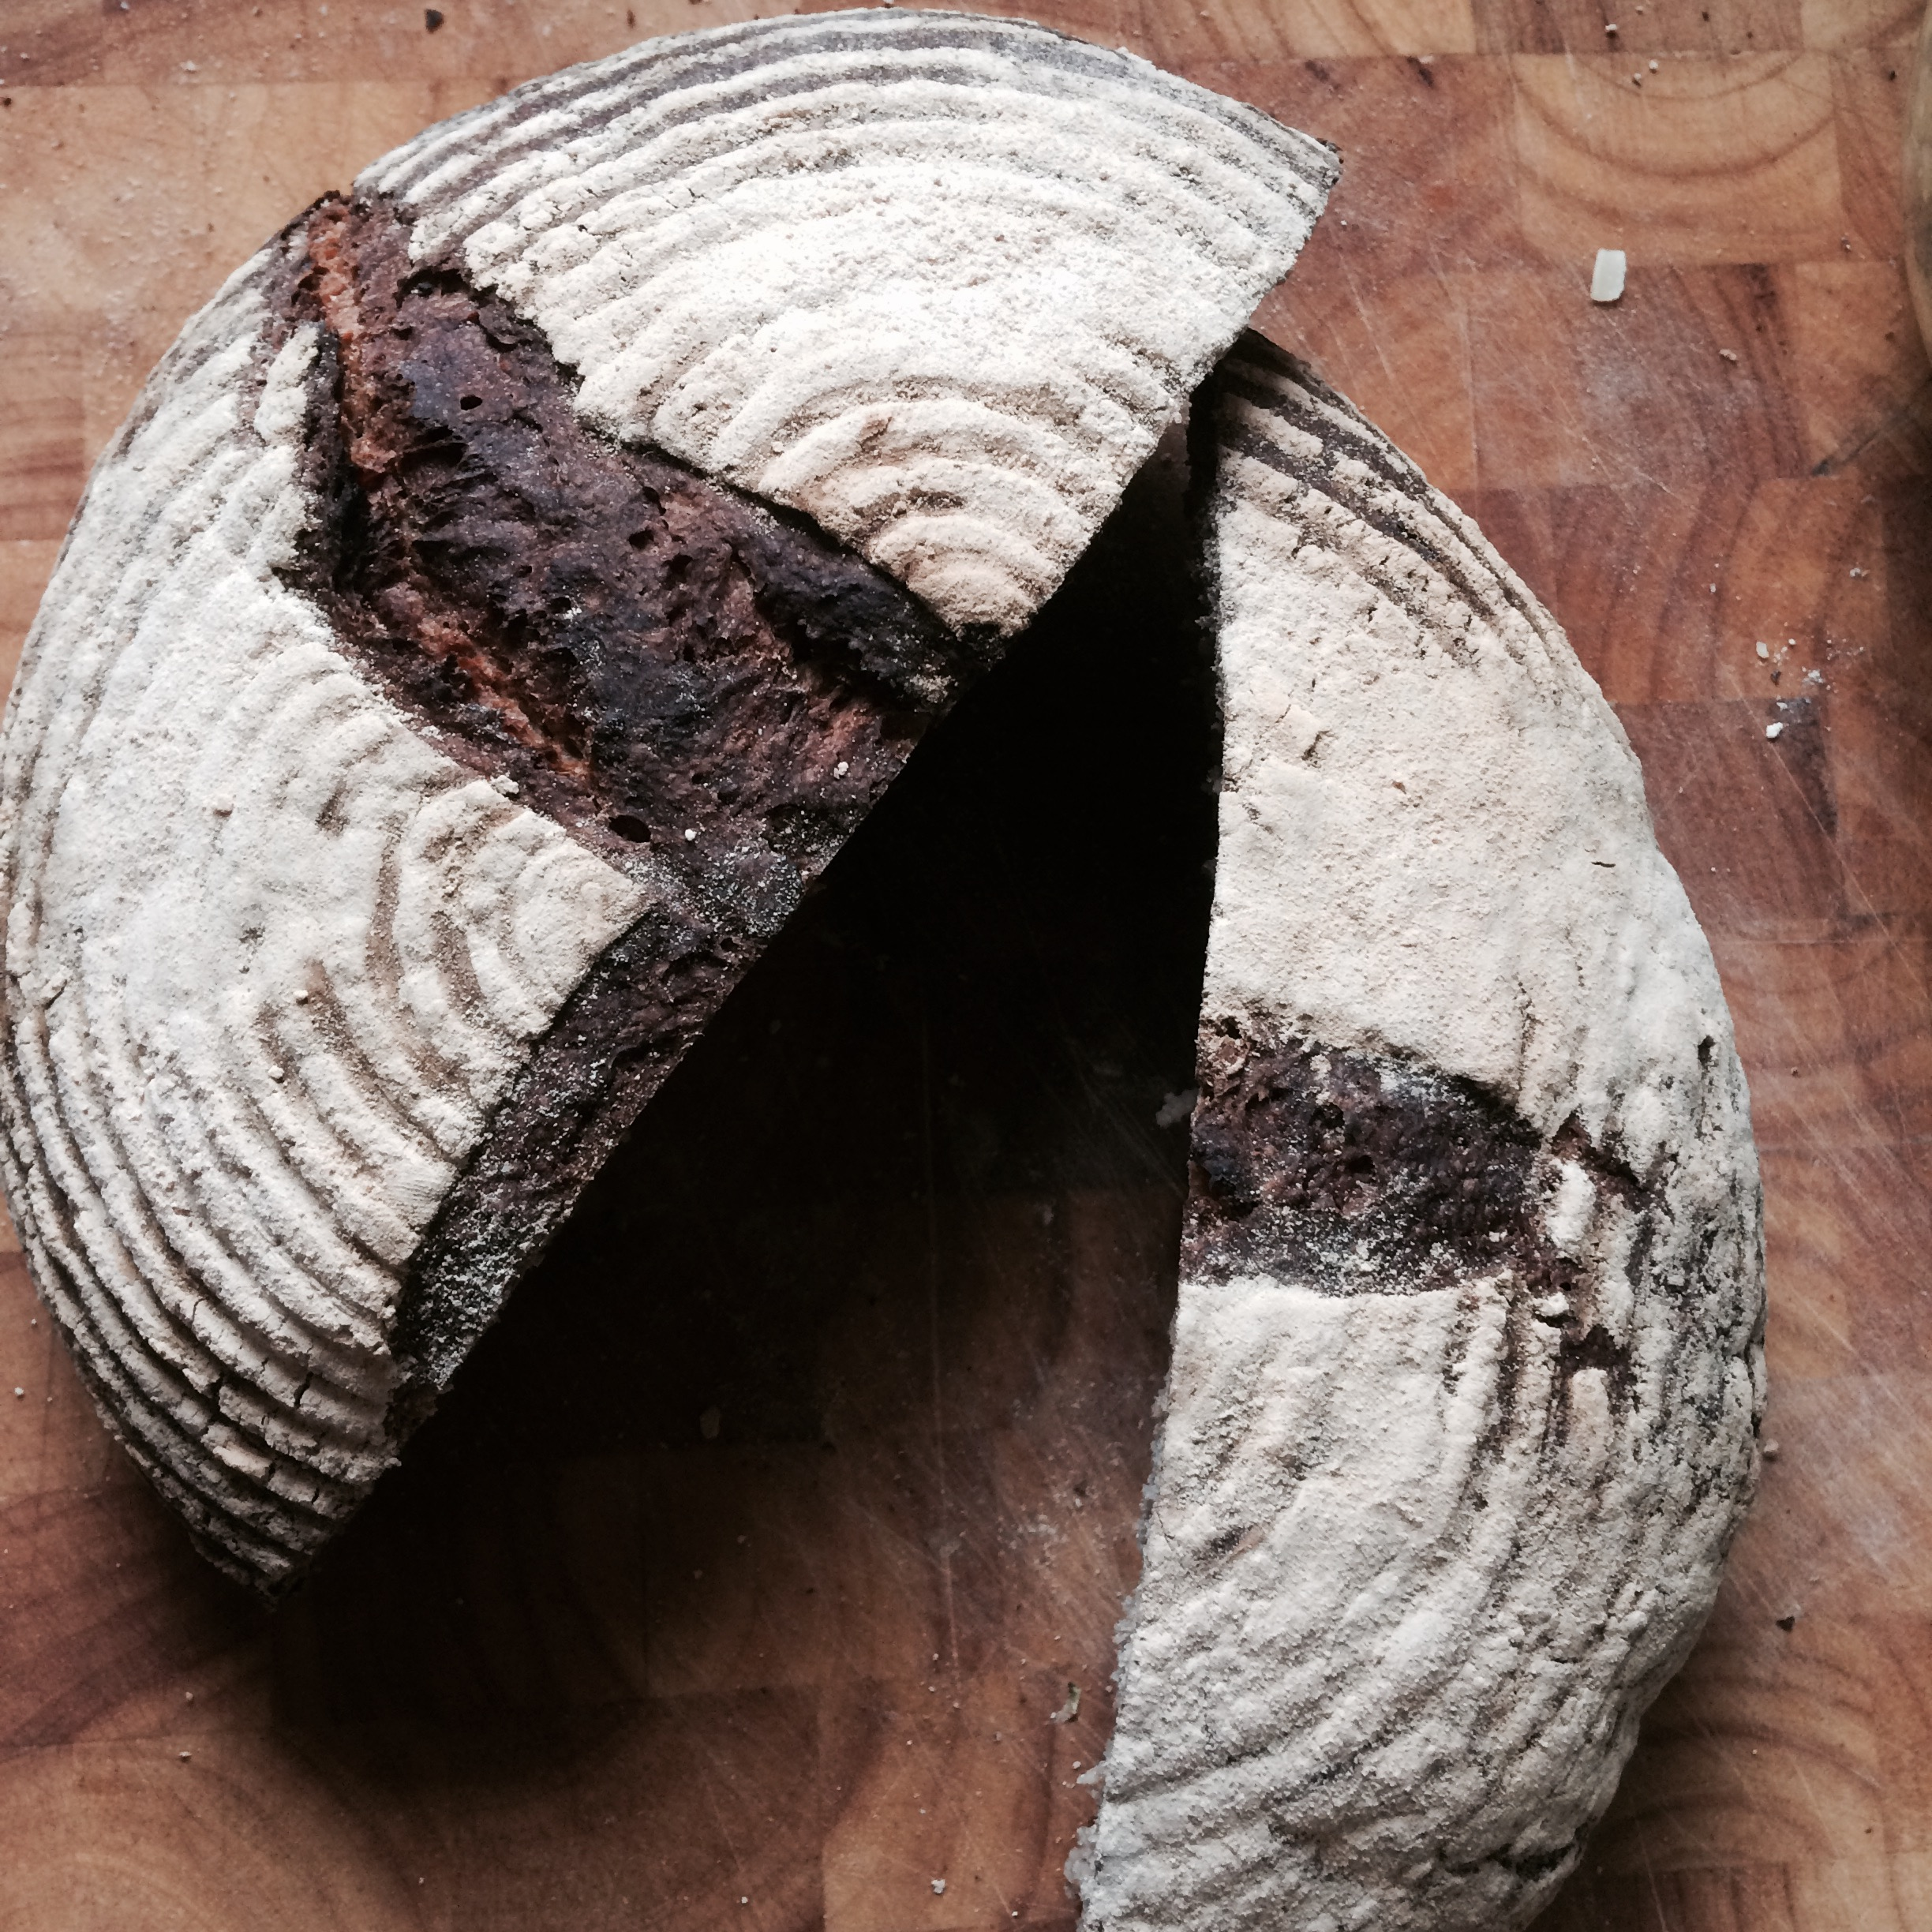 52 weeks of sourdough wk5